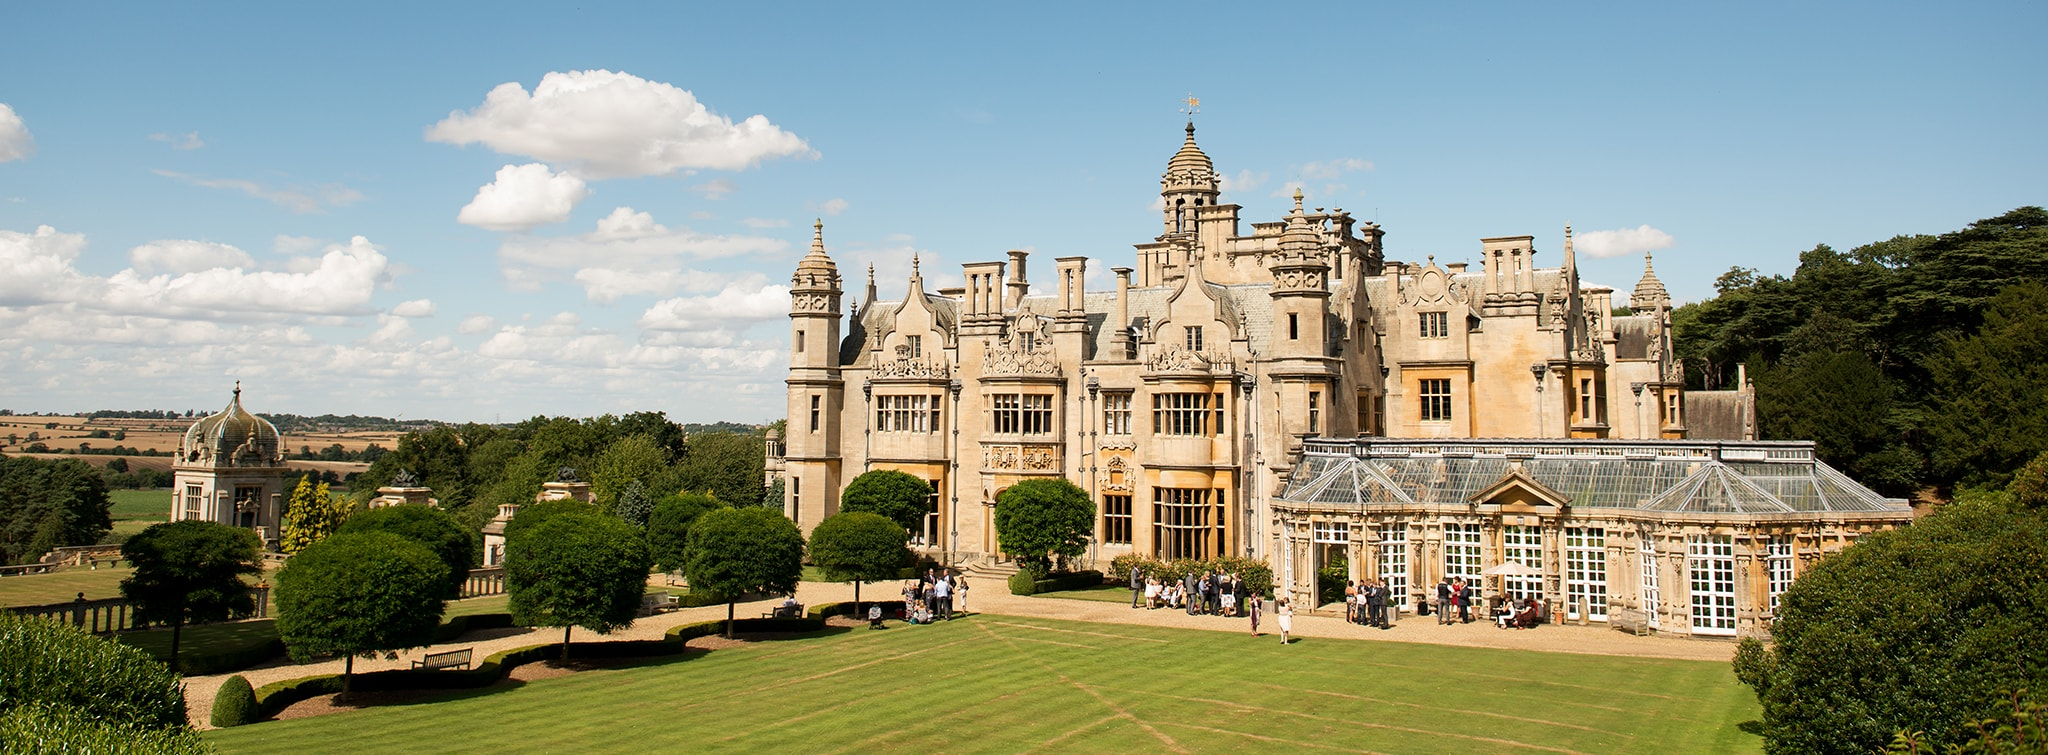 The lawn at Harlaxton Manor